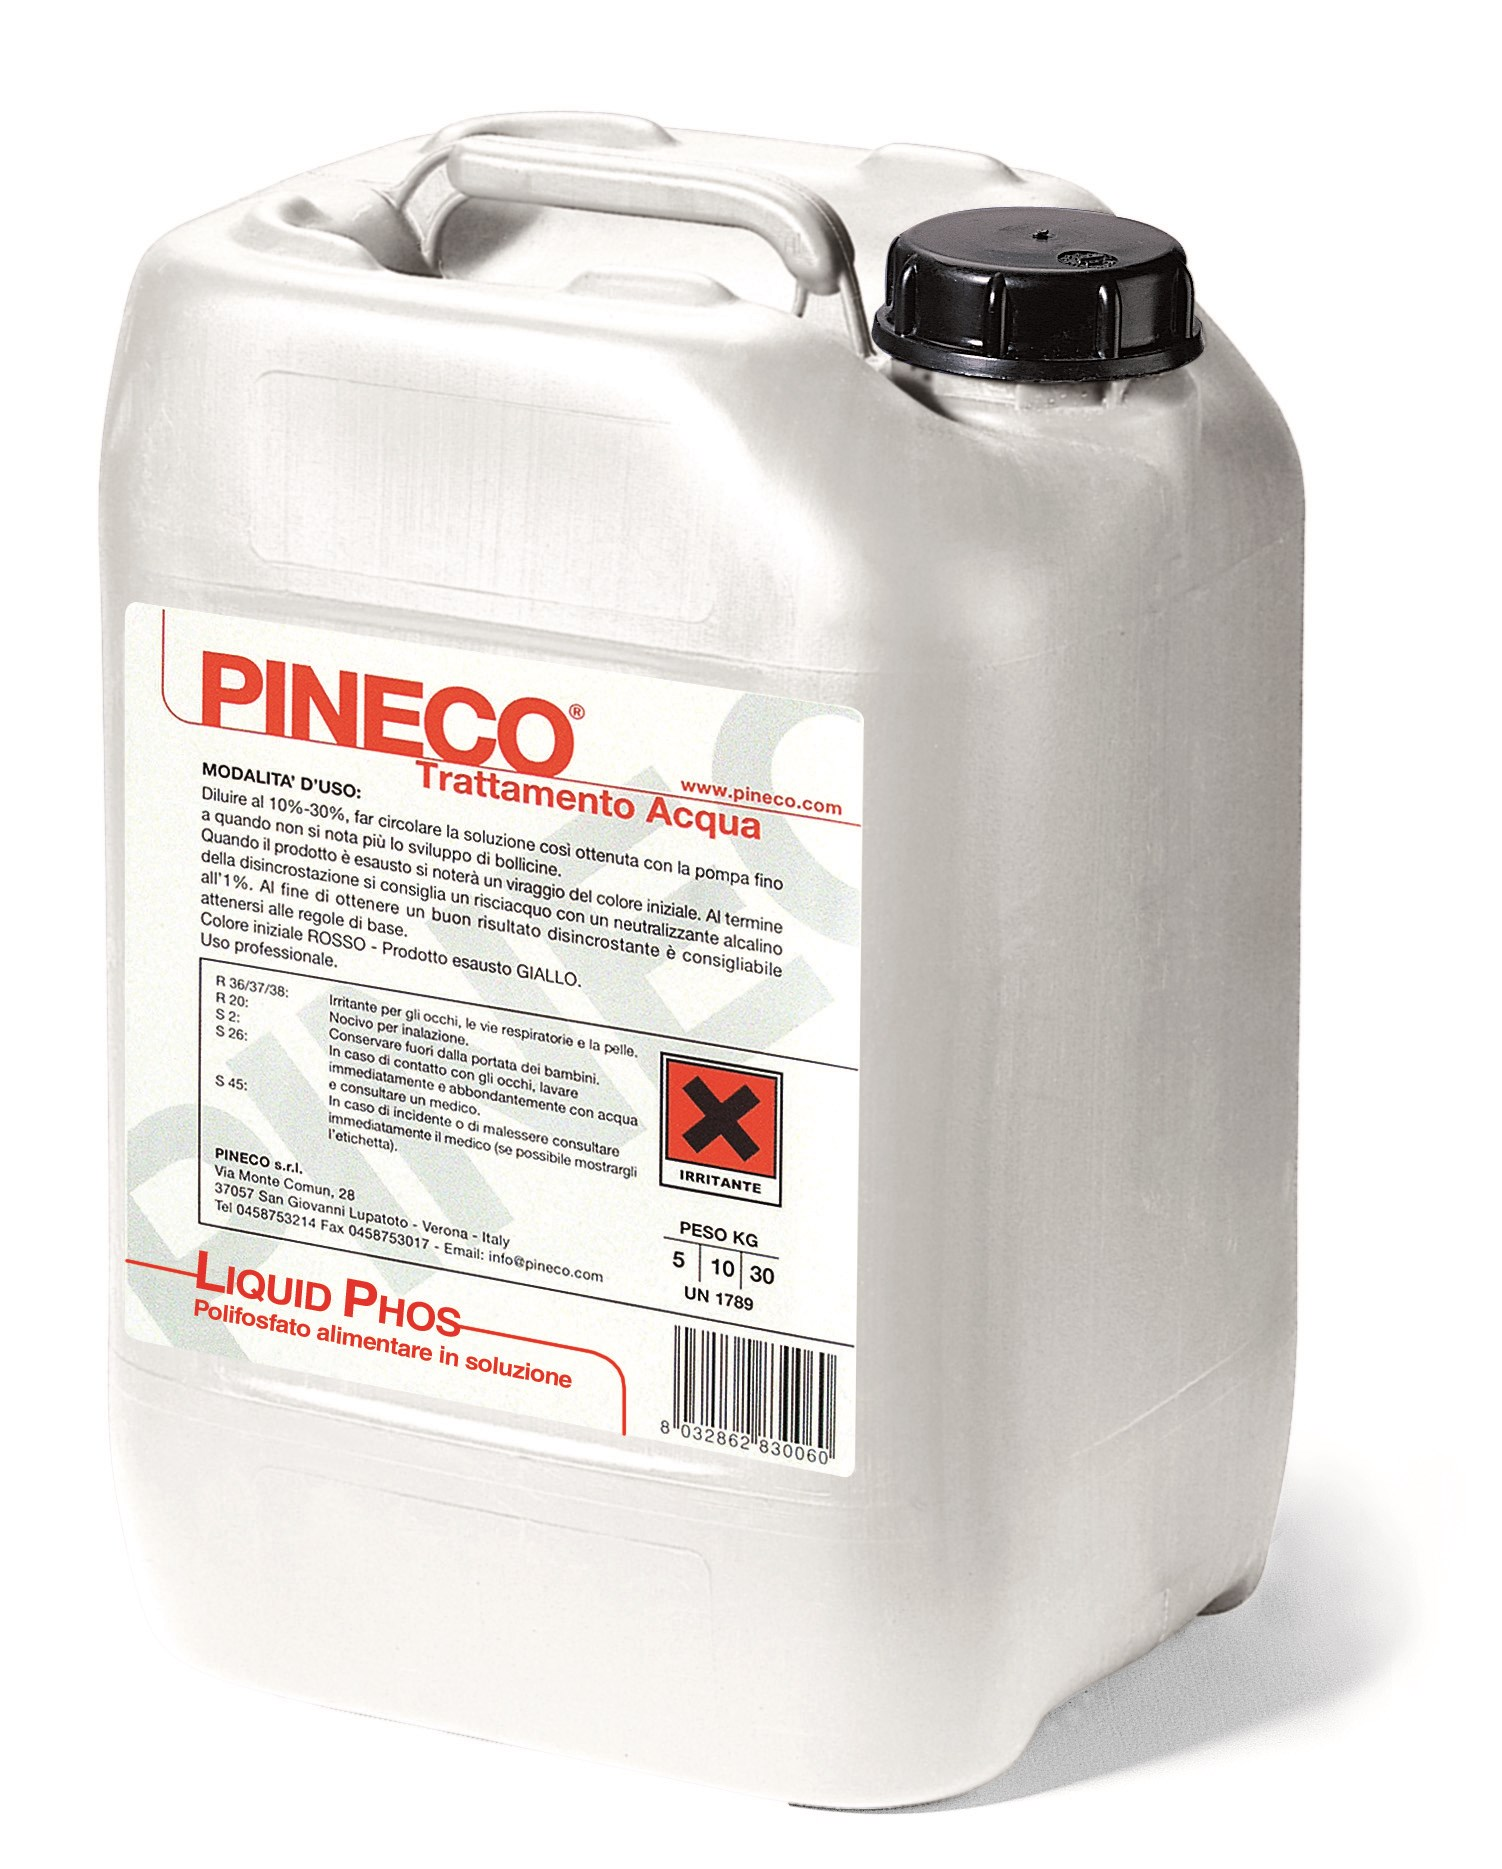 Liquid phos pineco for Pineco trattamento acqua